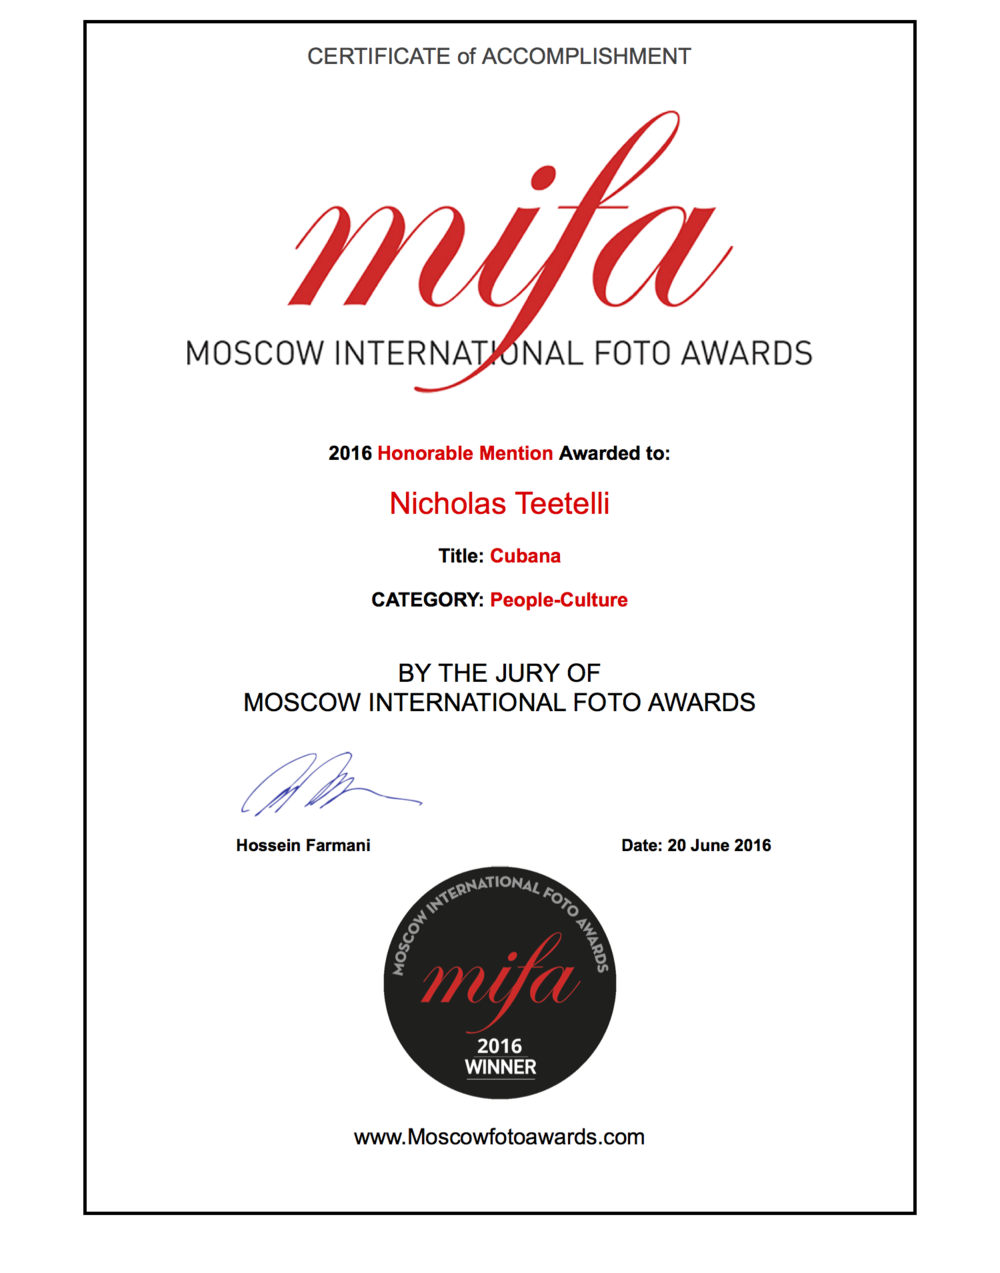 2016-06 Moscow International Foto Awards - MIFA 2016 - Cubana Series, Honorable Mention.png